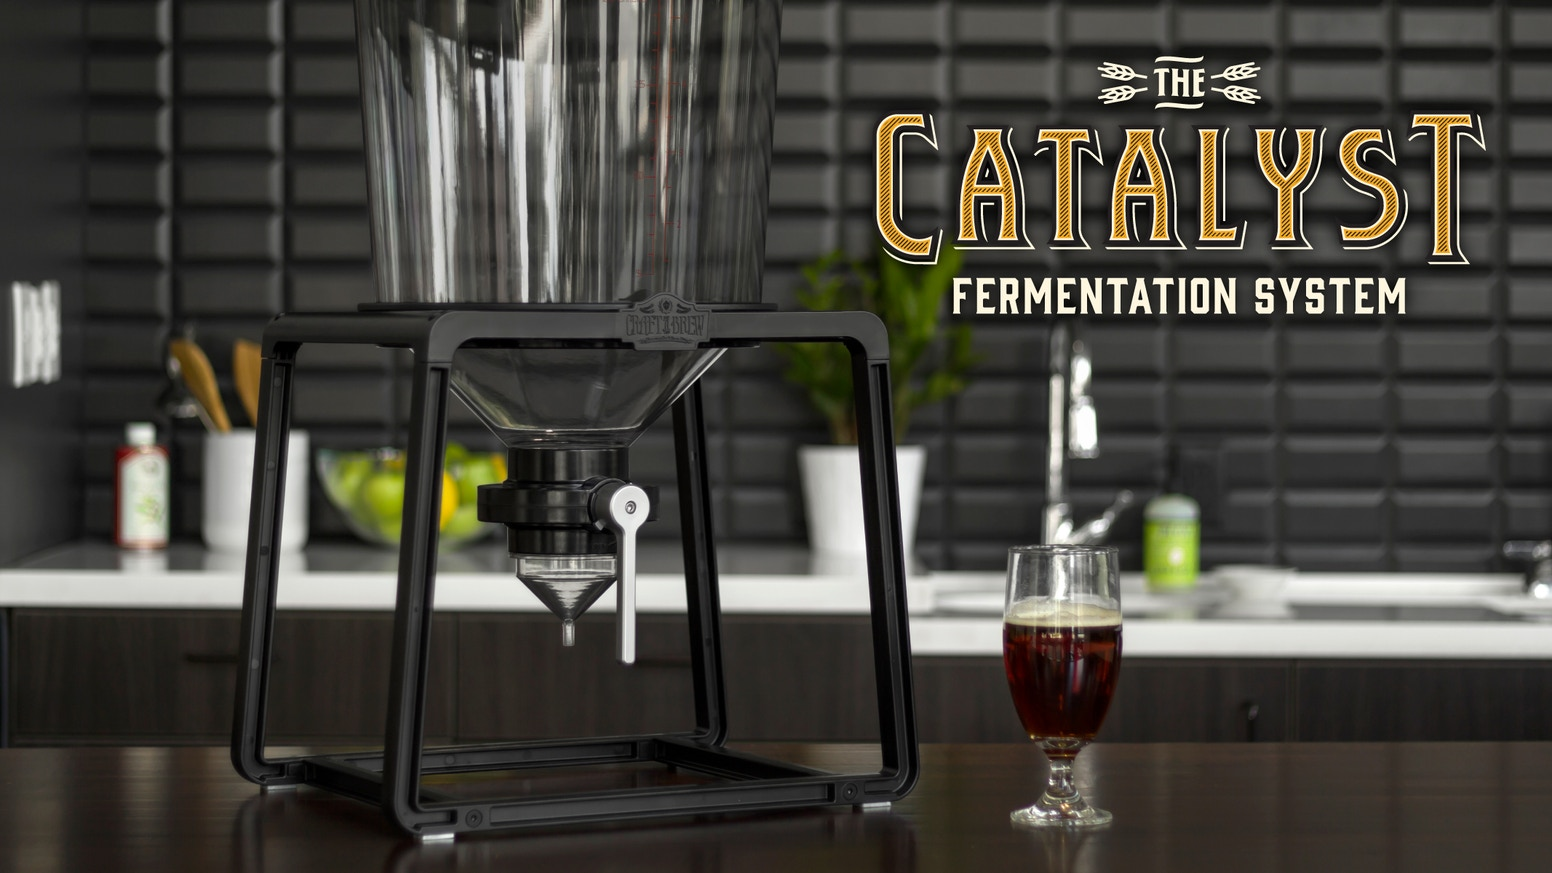 Craft your own beer with the help of our elegant and innovative fermentation system. Designed to simplify the homebrewing experience.